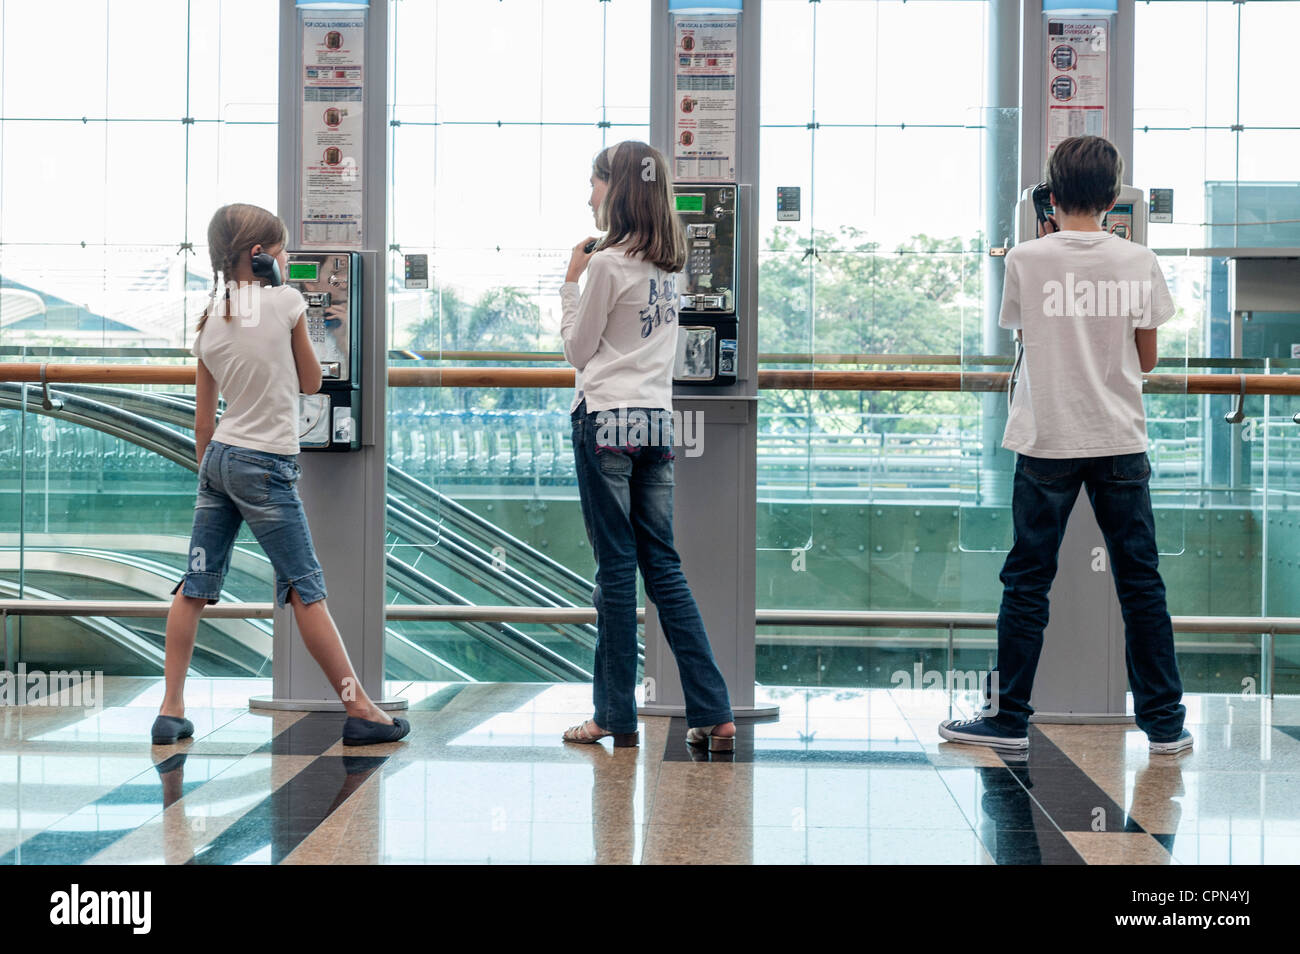 Children using payphones - Stock Image